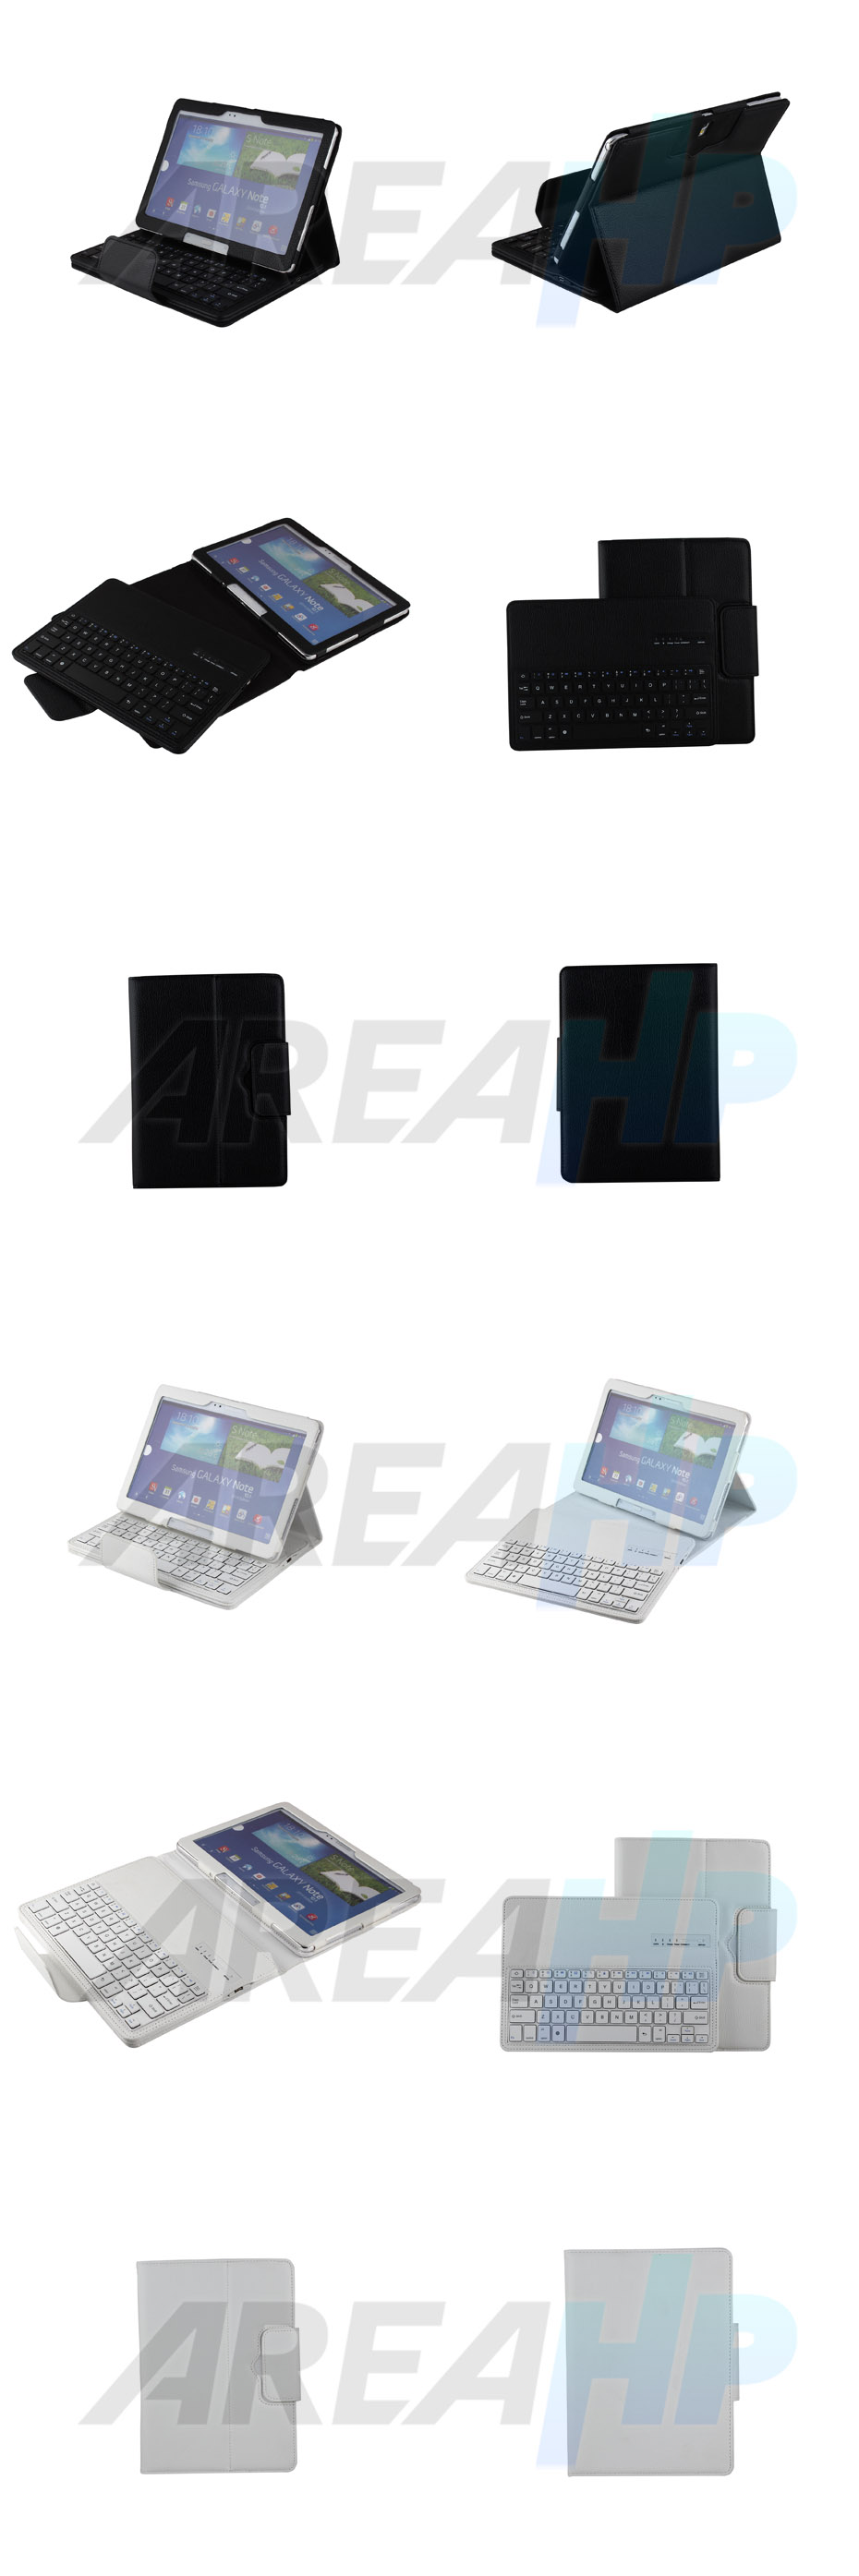 Removable Keyboard Leather Case for Samsung Galaxy Note 10.1 2014 P601 Overview